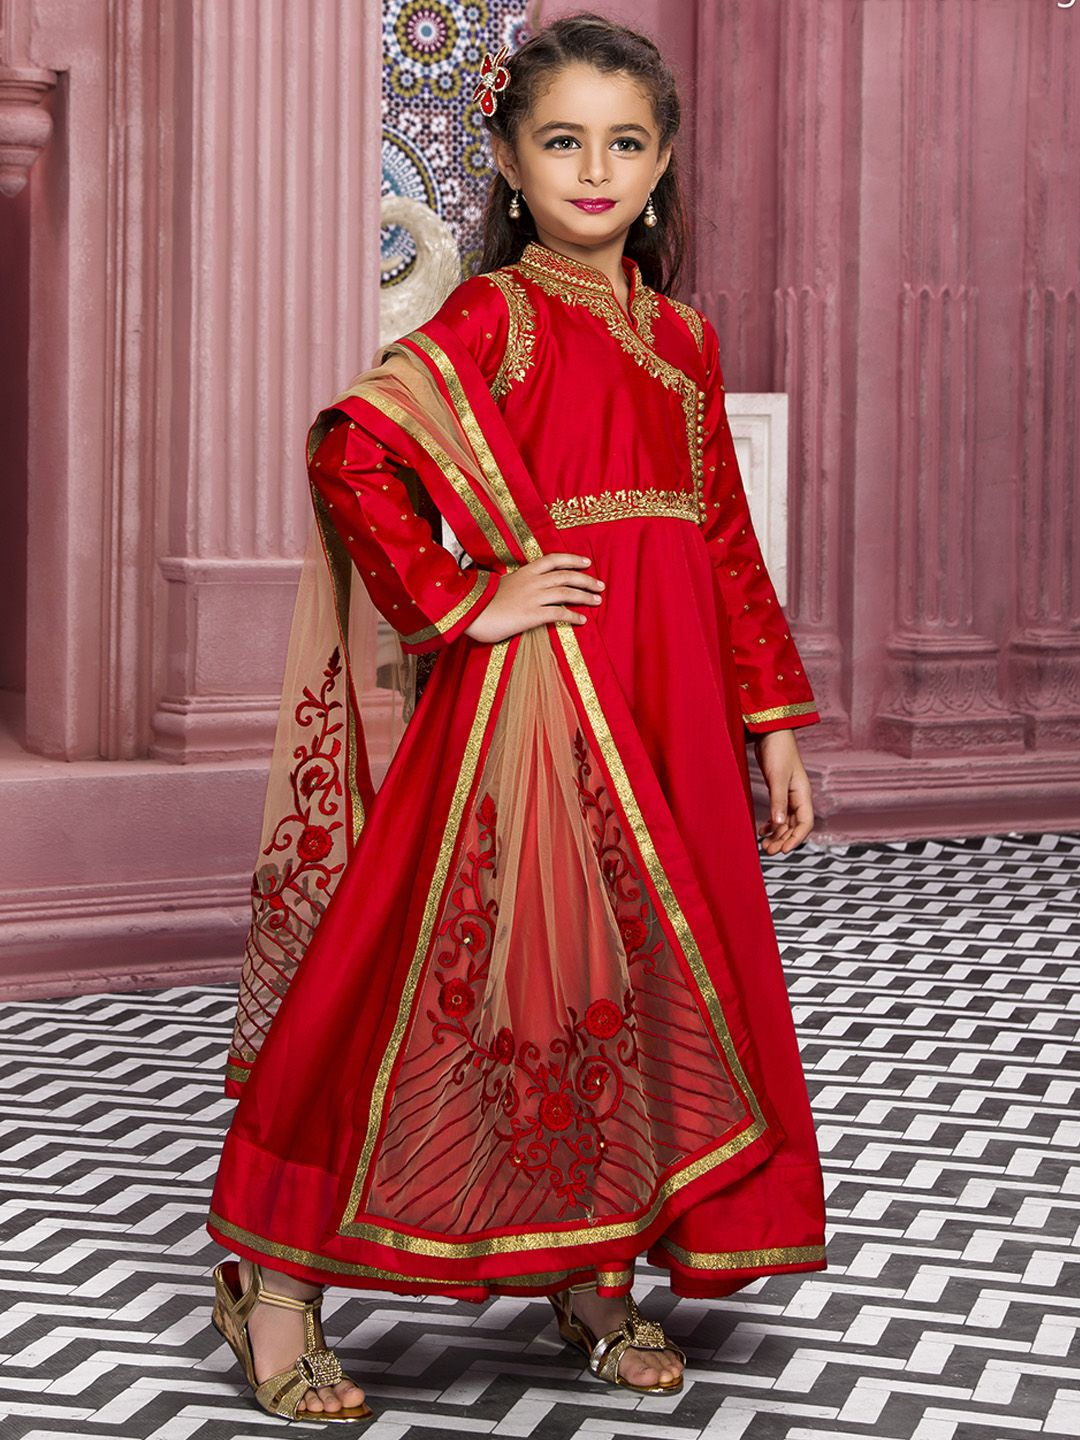 13++ Where to buy toddler suits for weddings ideas